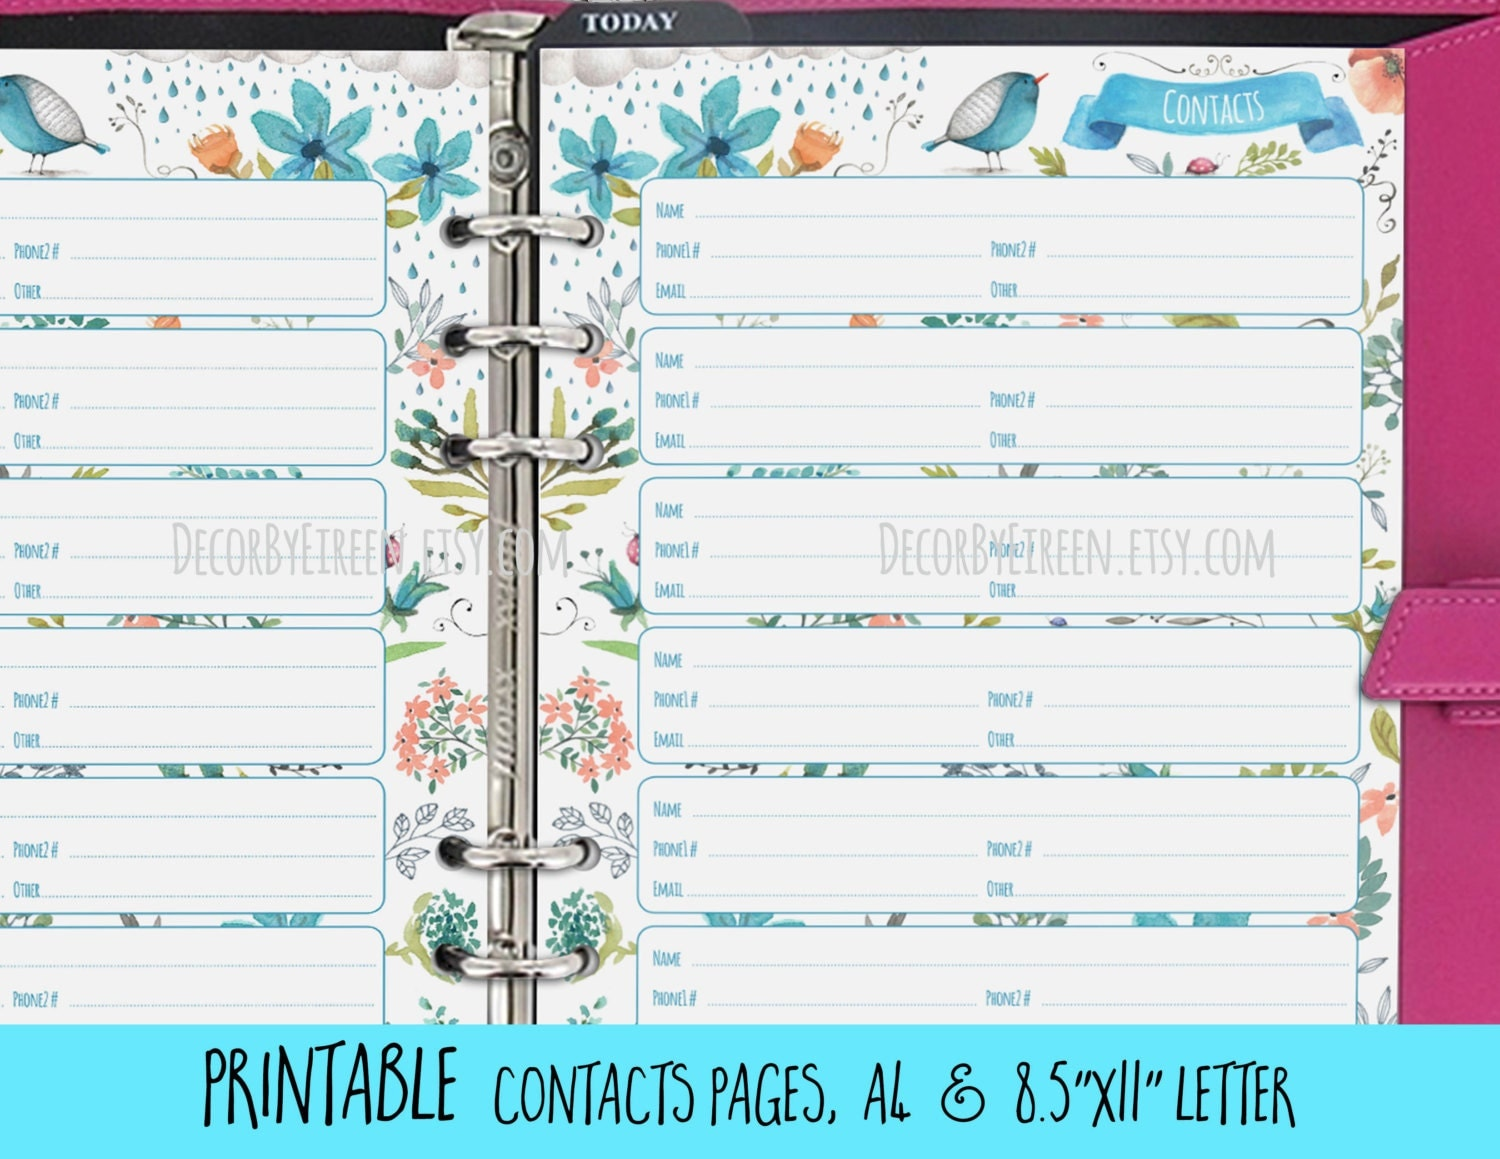 Satisfactory image with regard to printable address book pages